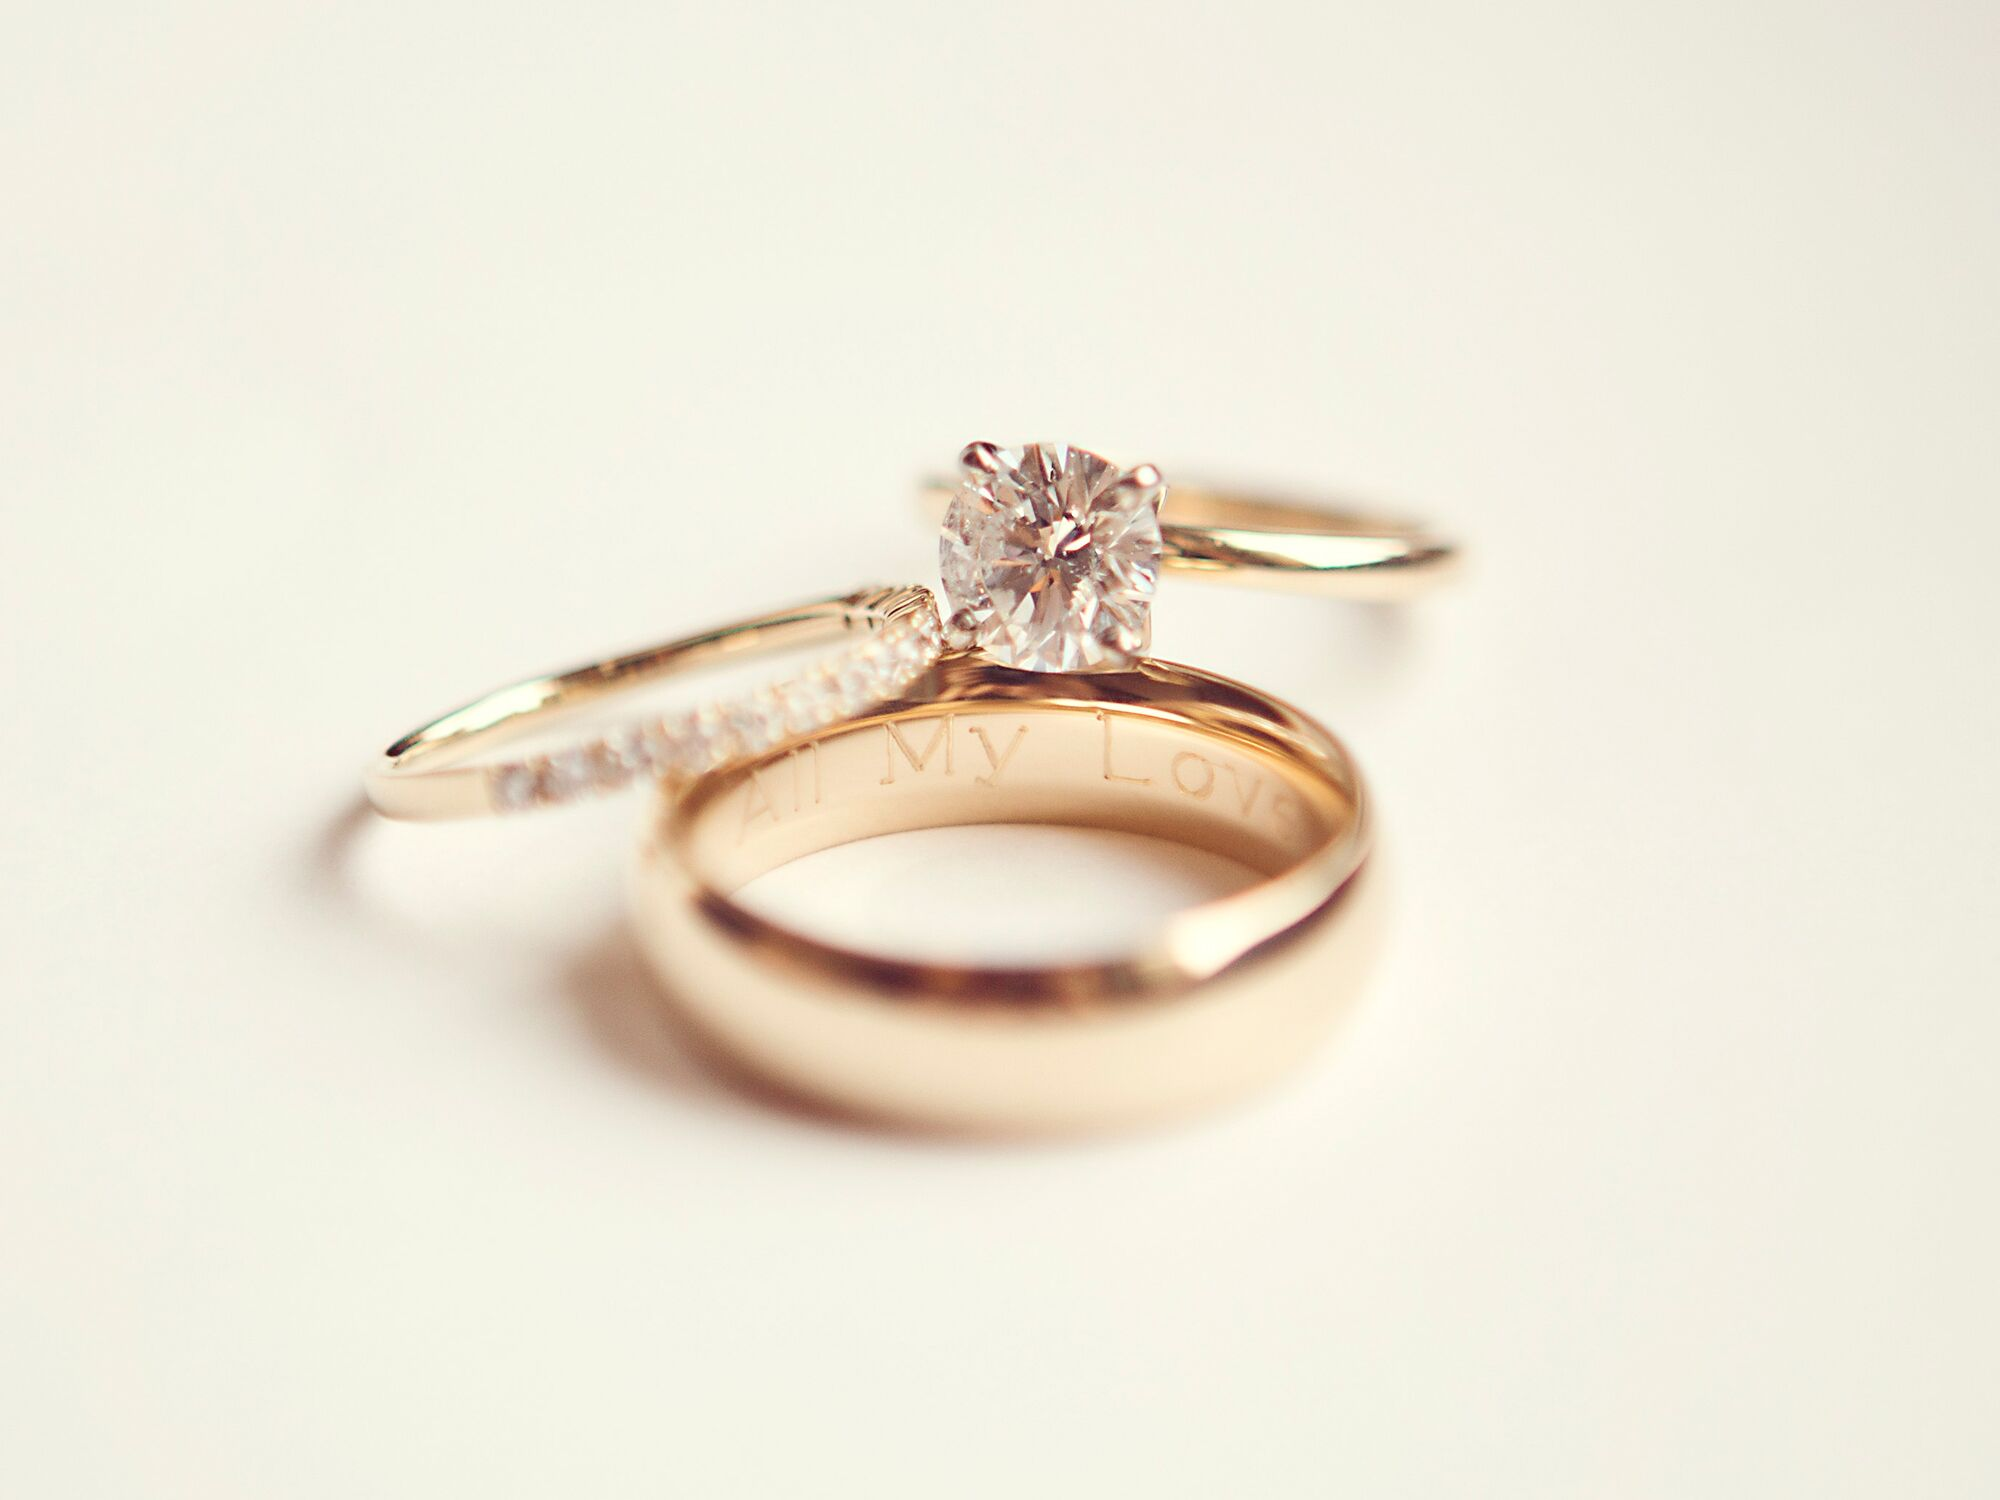 caring for your wedding rings